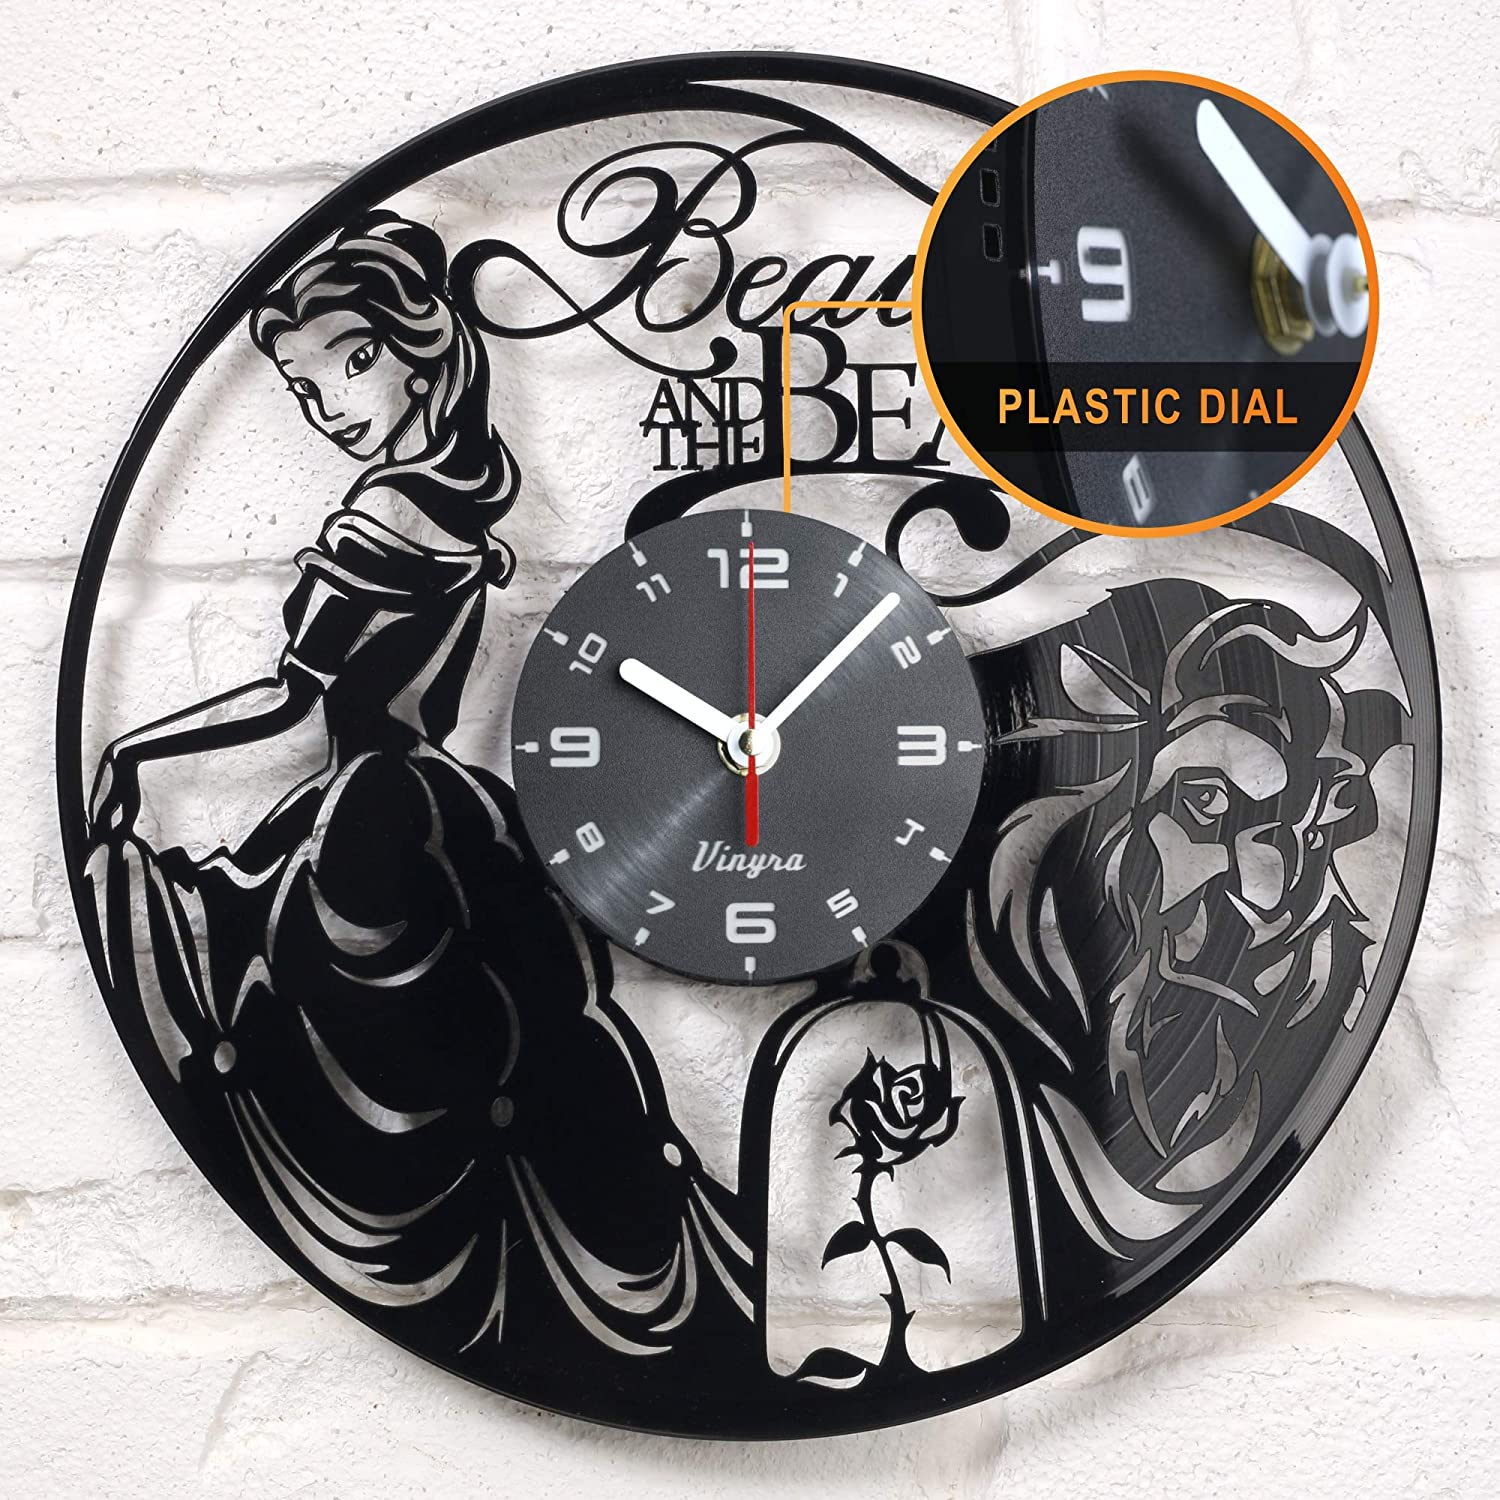 "Vinyra Vinyl Wall Clock compatible with Walt Disney Princess Belle Beauty and the Beast Themed Home - Gift Idea for Adults, Girls and Women Nursery Kids Room Wall Art Decor 12"" LP Record Clock Black"